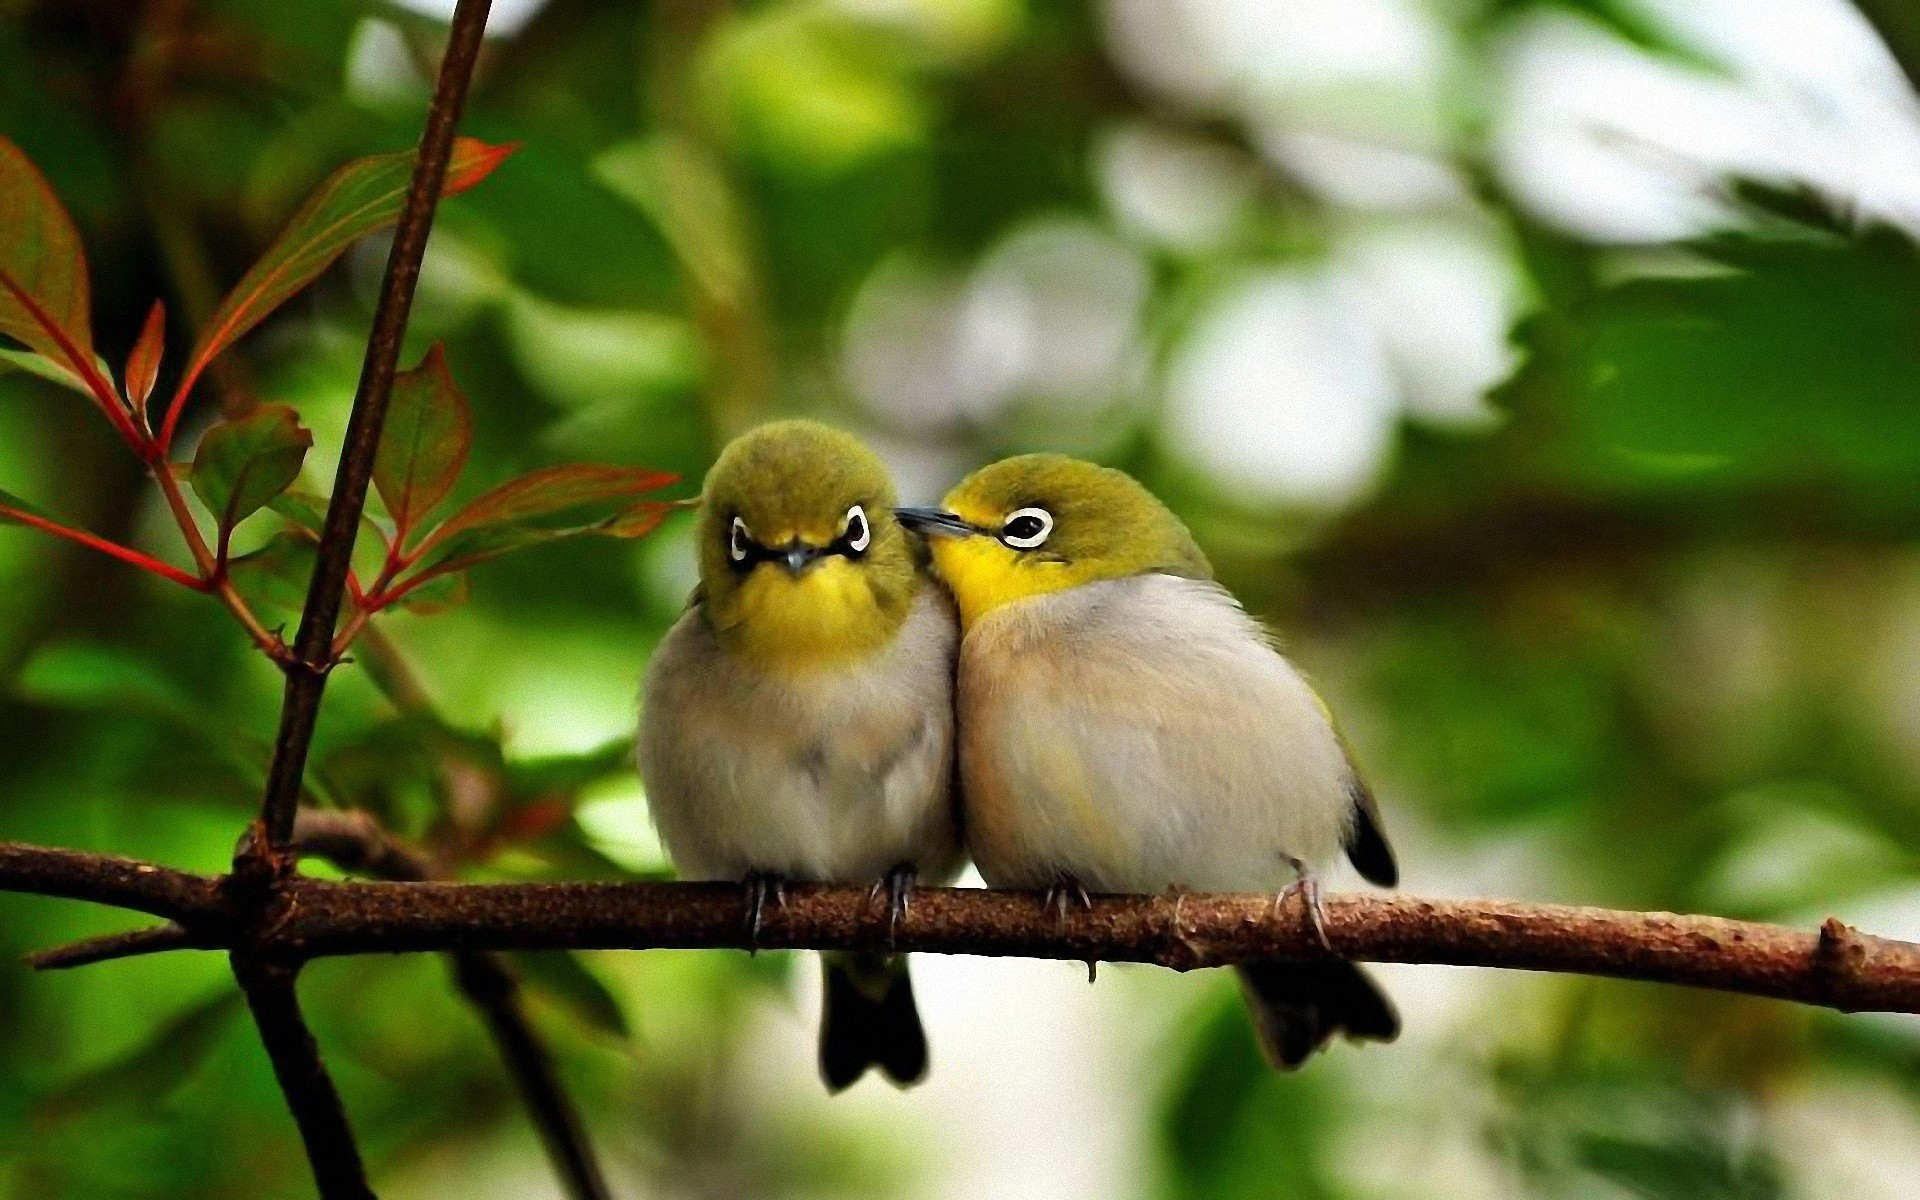 """Not only does Whitman suggest that the bird is his brother, but he suggests also that the bird is """"sad"""" (line 9), lending to the bird an emotive feeling ..."""